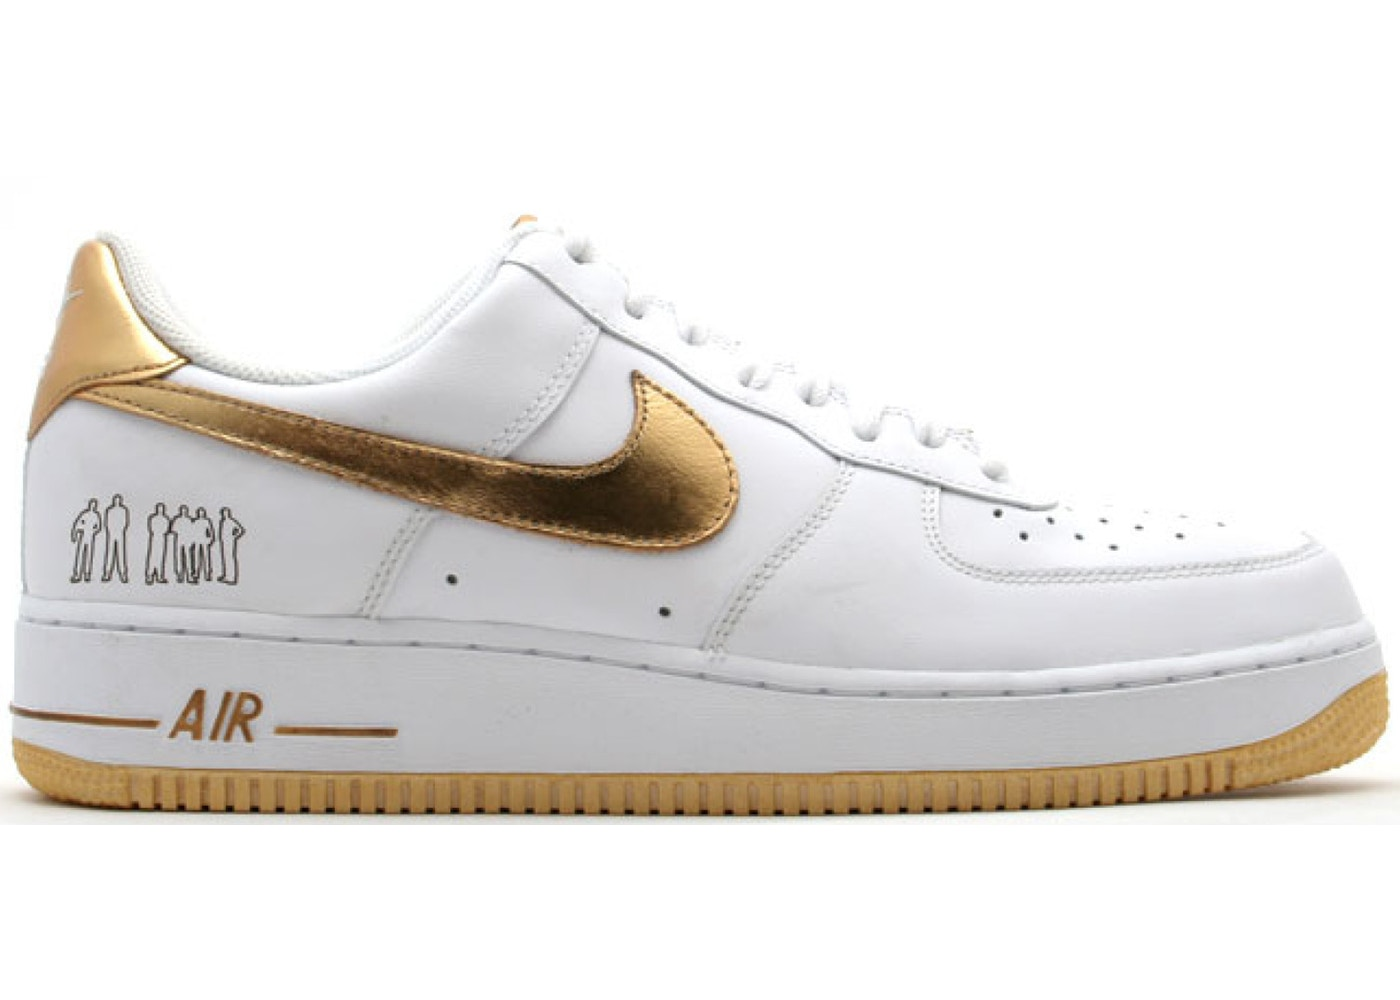 Nike Air Force 1 Low Players White Metallic Gold - 315092-171